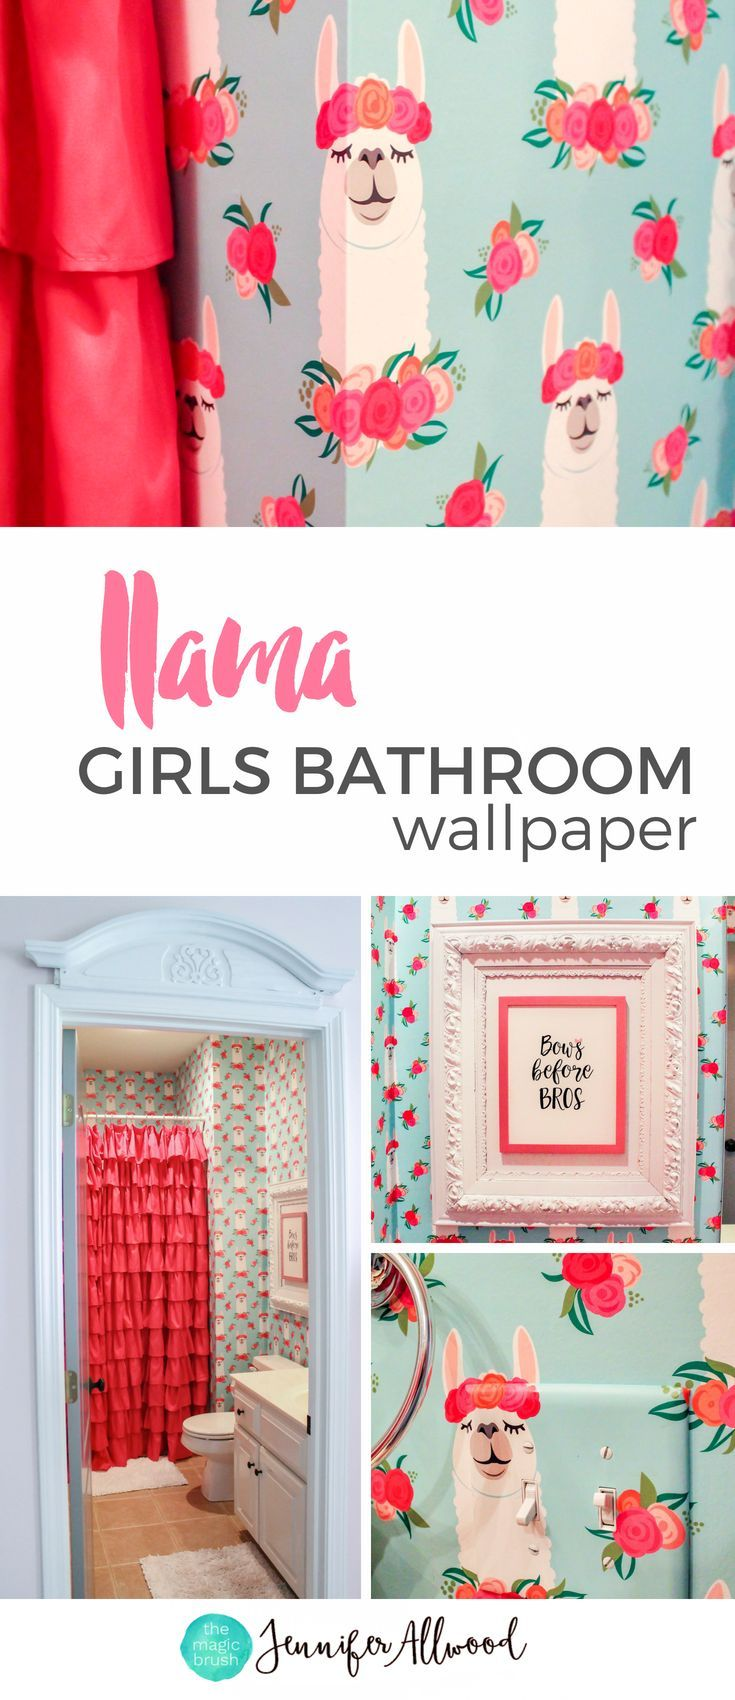 Here's an adorable way to decorate a girl's bathroom with llama wallpaper and a long ruffle shower curtain by Jennifer Allwood | Girls Curtain Ideas | Ruffle Pink Shower Curtain Curtain | Girls Window Treatments | Llama Decor | Girls Bathroom Decorating I